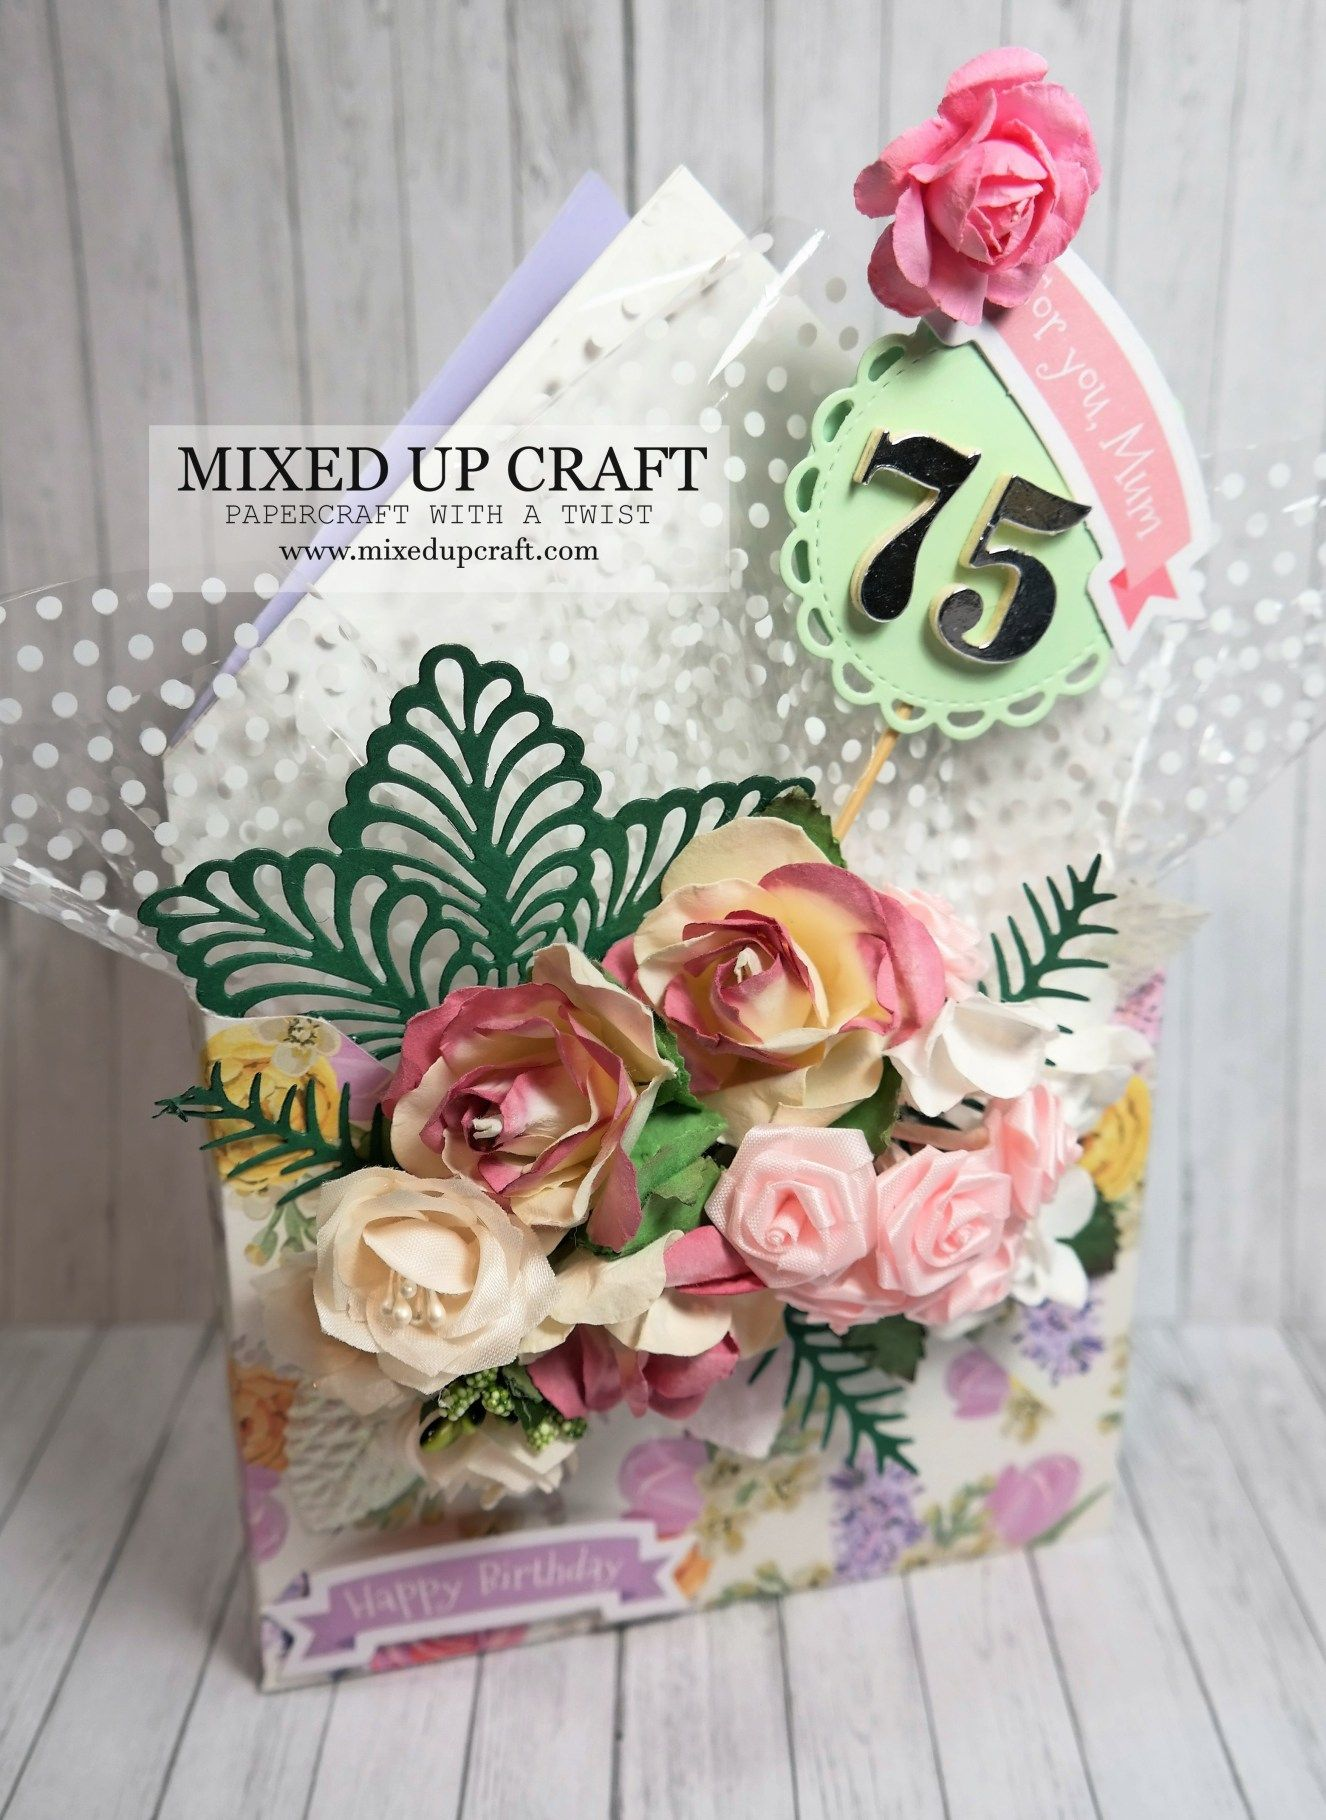 Beautiful Envelope Box Bouquet Card in 2020 Envelope box